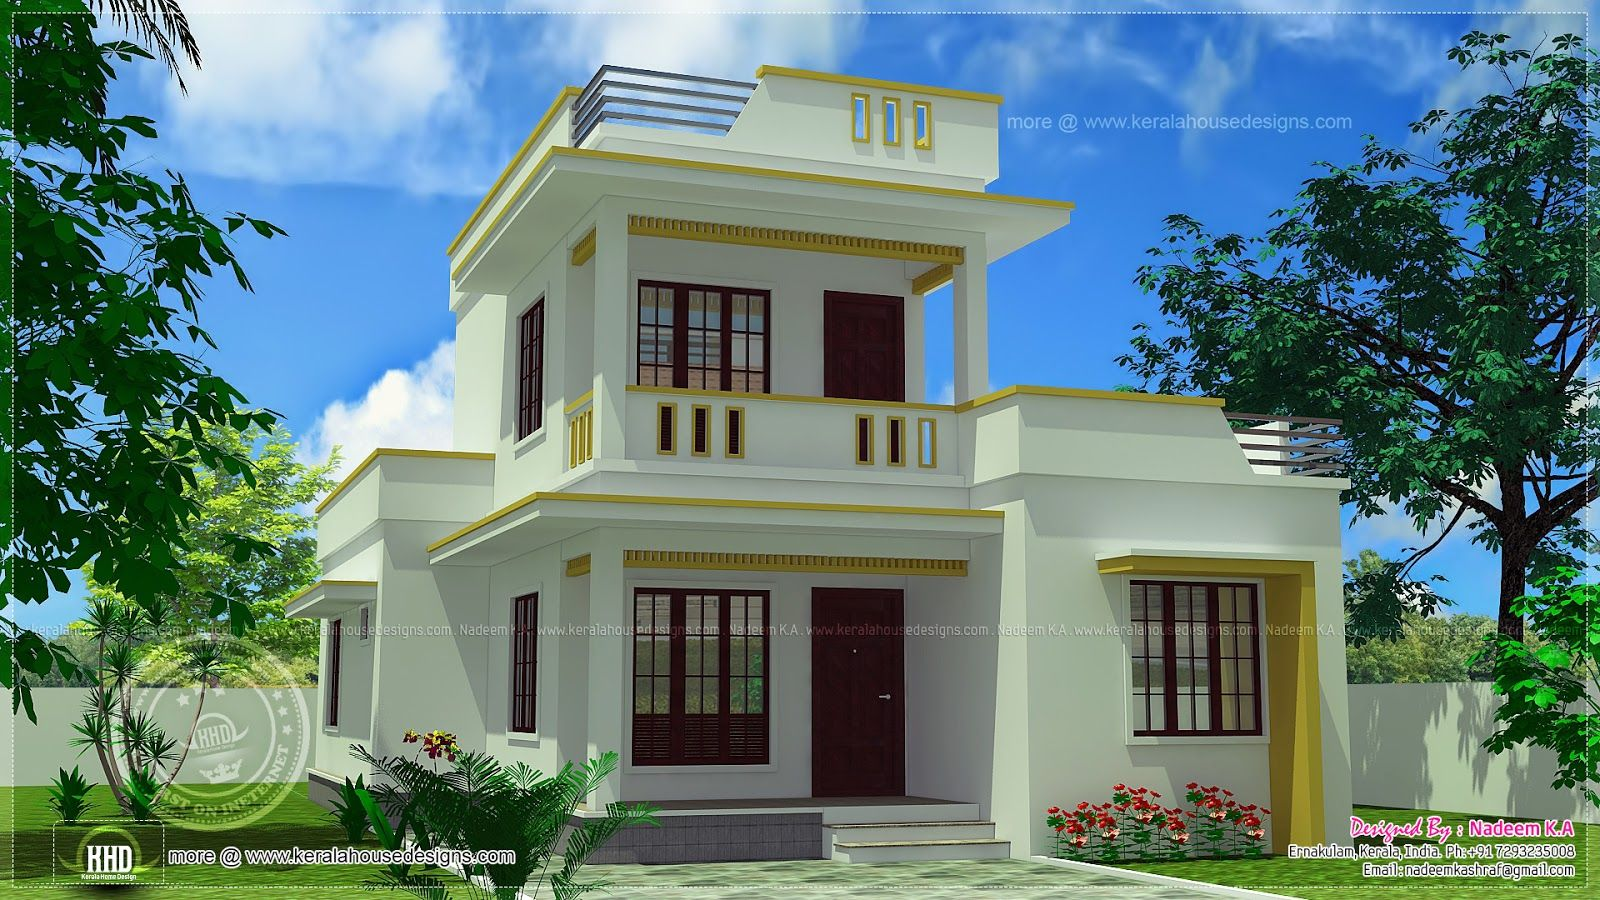 Roof home design feet kerala plans simple modern house for Simple but modern house design